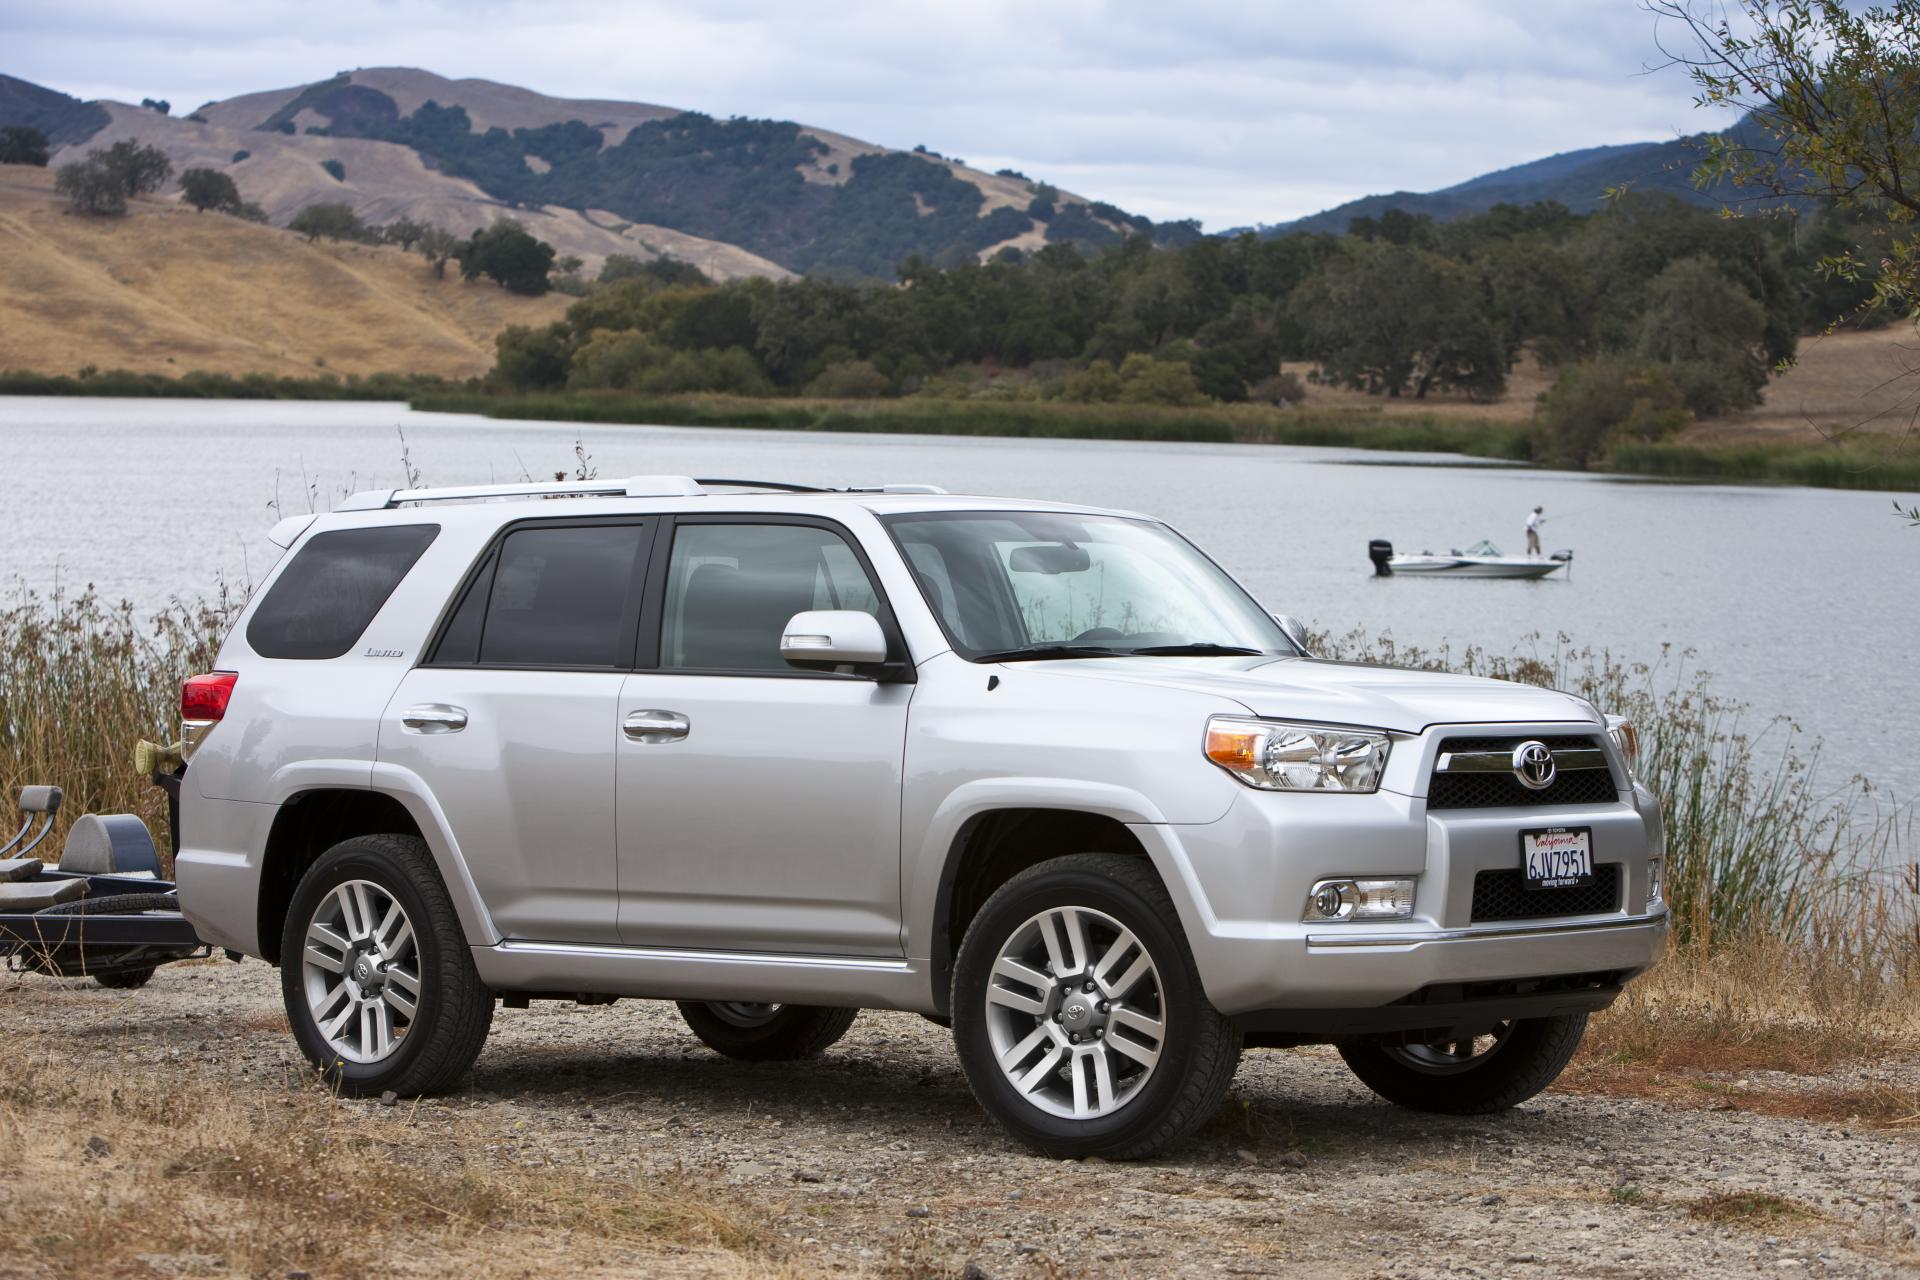 2012 toyota 4runner. Black Bedroom Furniture Sets. Home Design Ideas